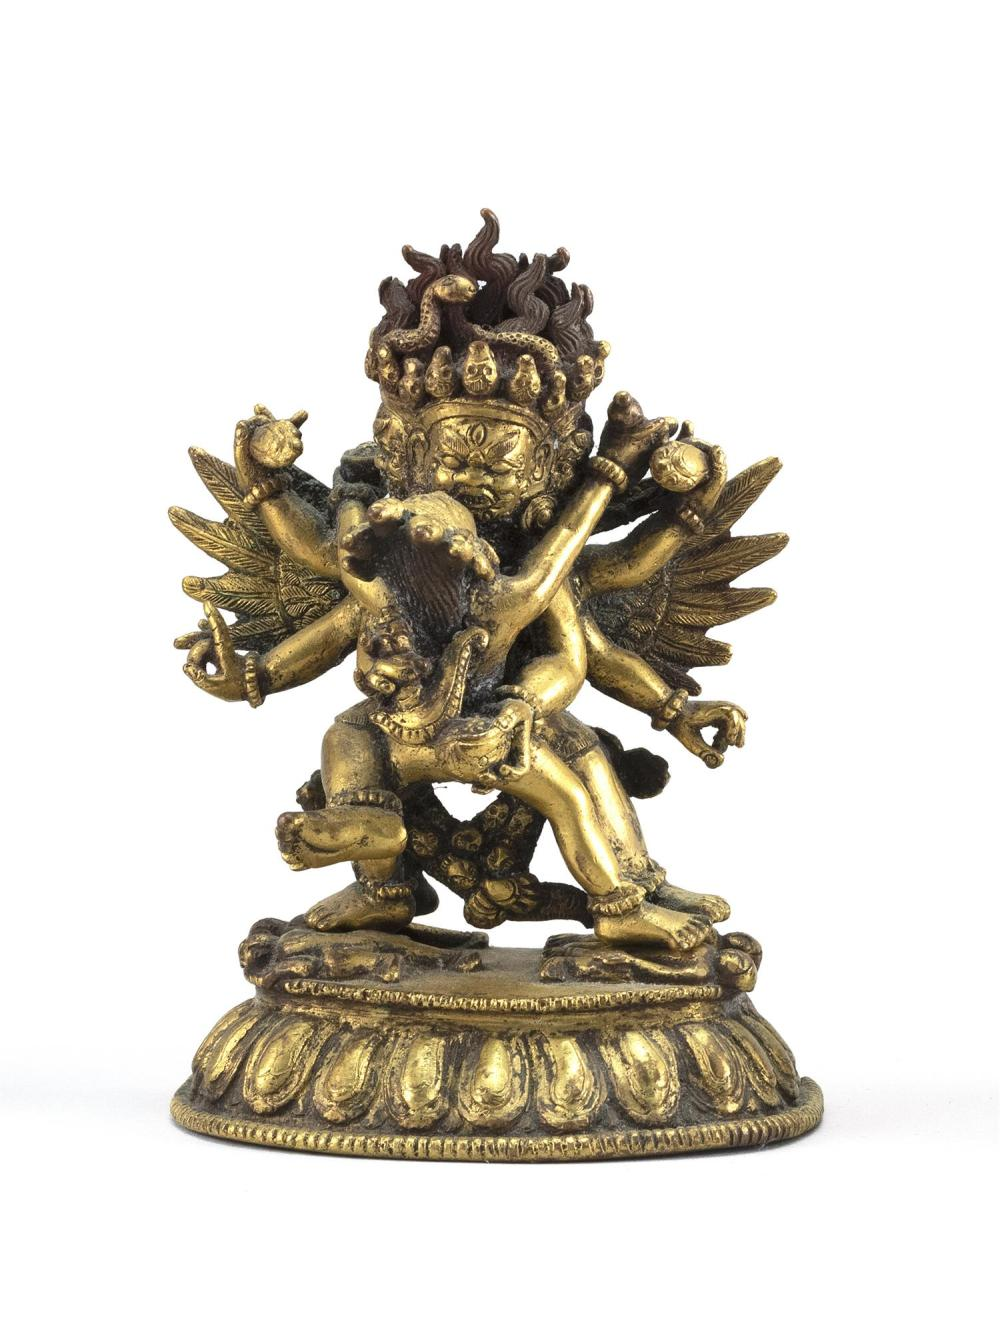 "SINO-TIBETAN GILT-BRONZE FIGURE OF YAMANTAKA WITH HIS CONSORT Dancing on prostrate figures. Height 4""."